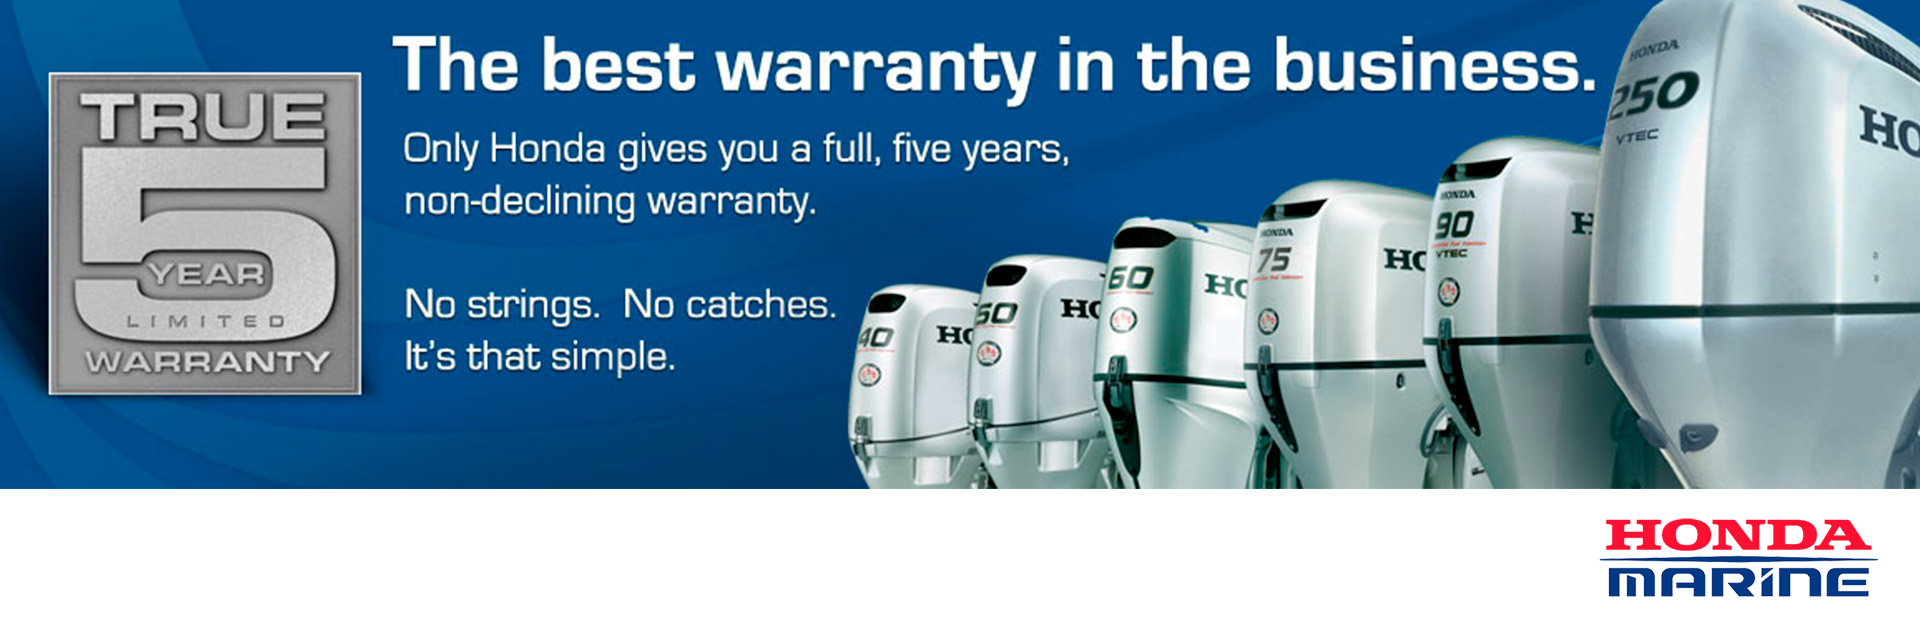 Honda Marine:  Warranty Information